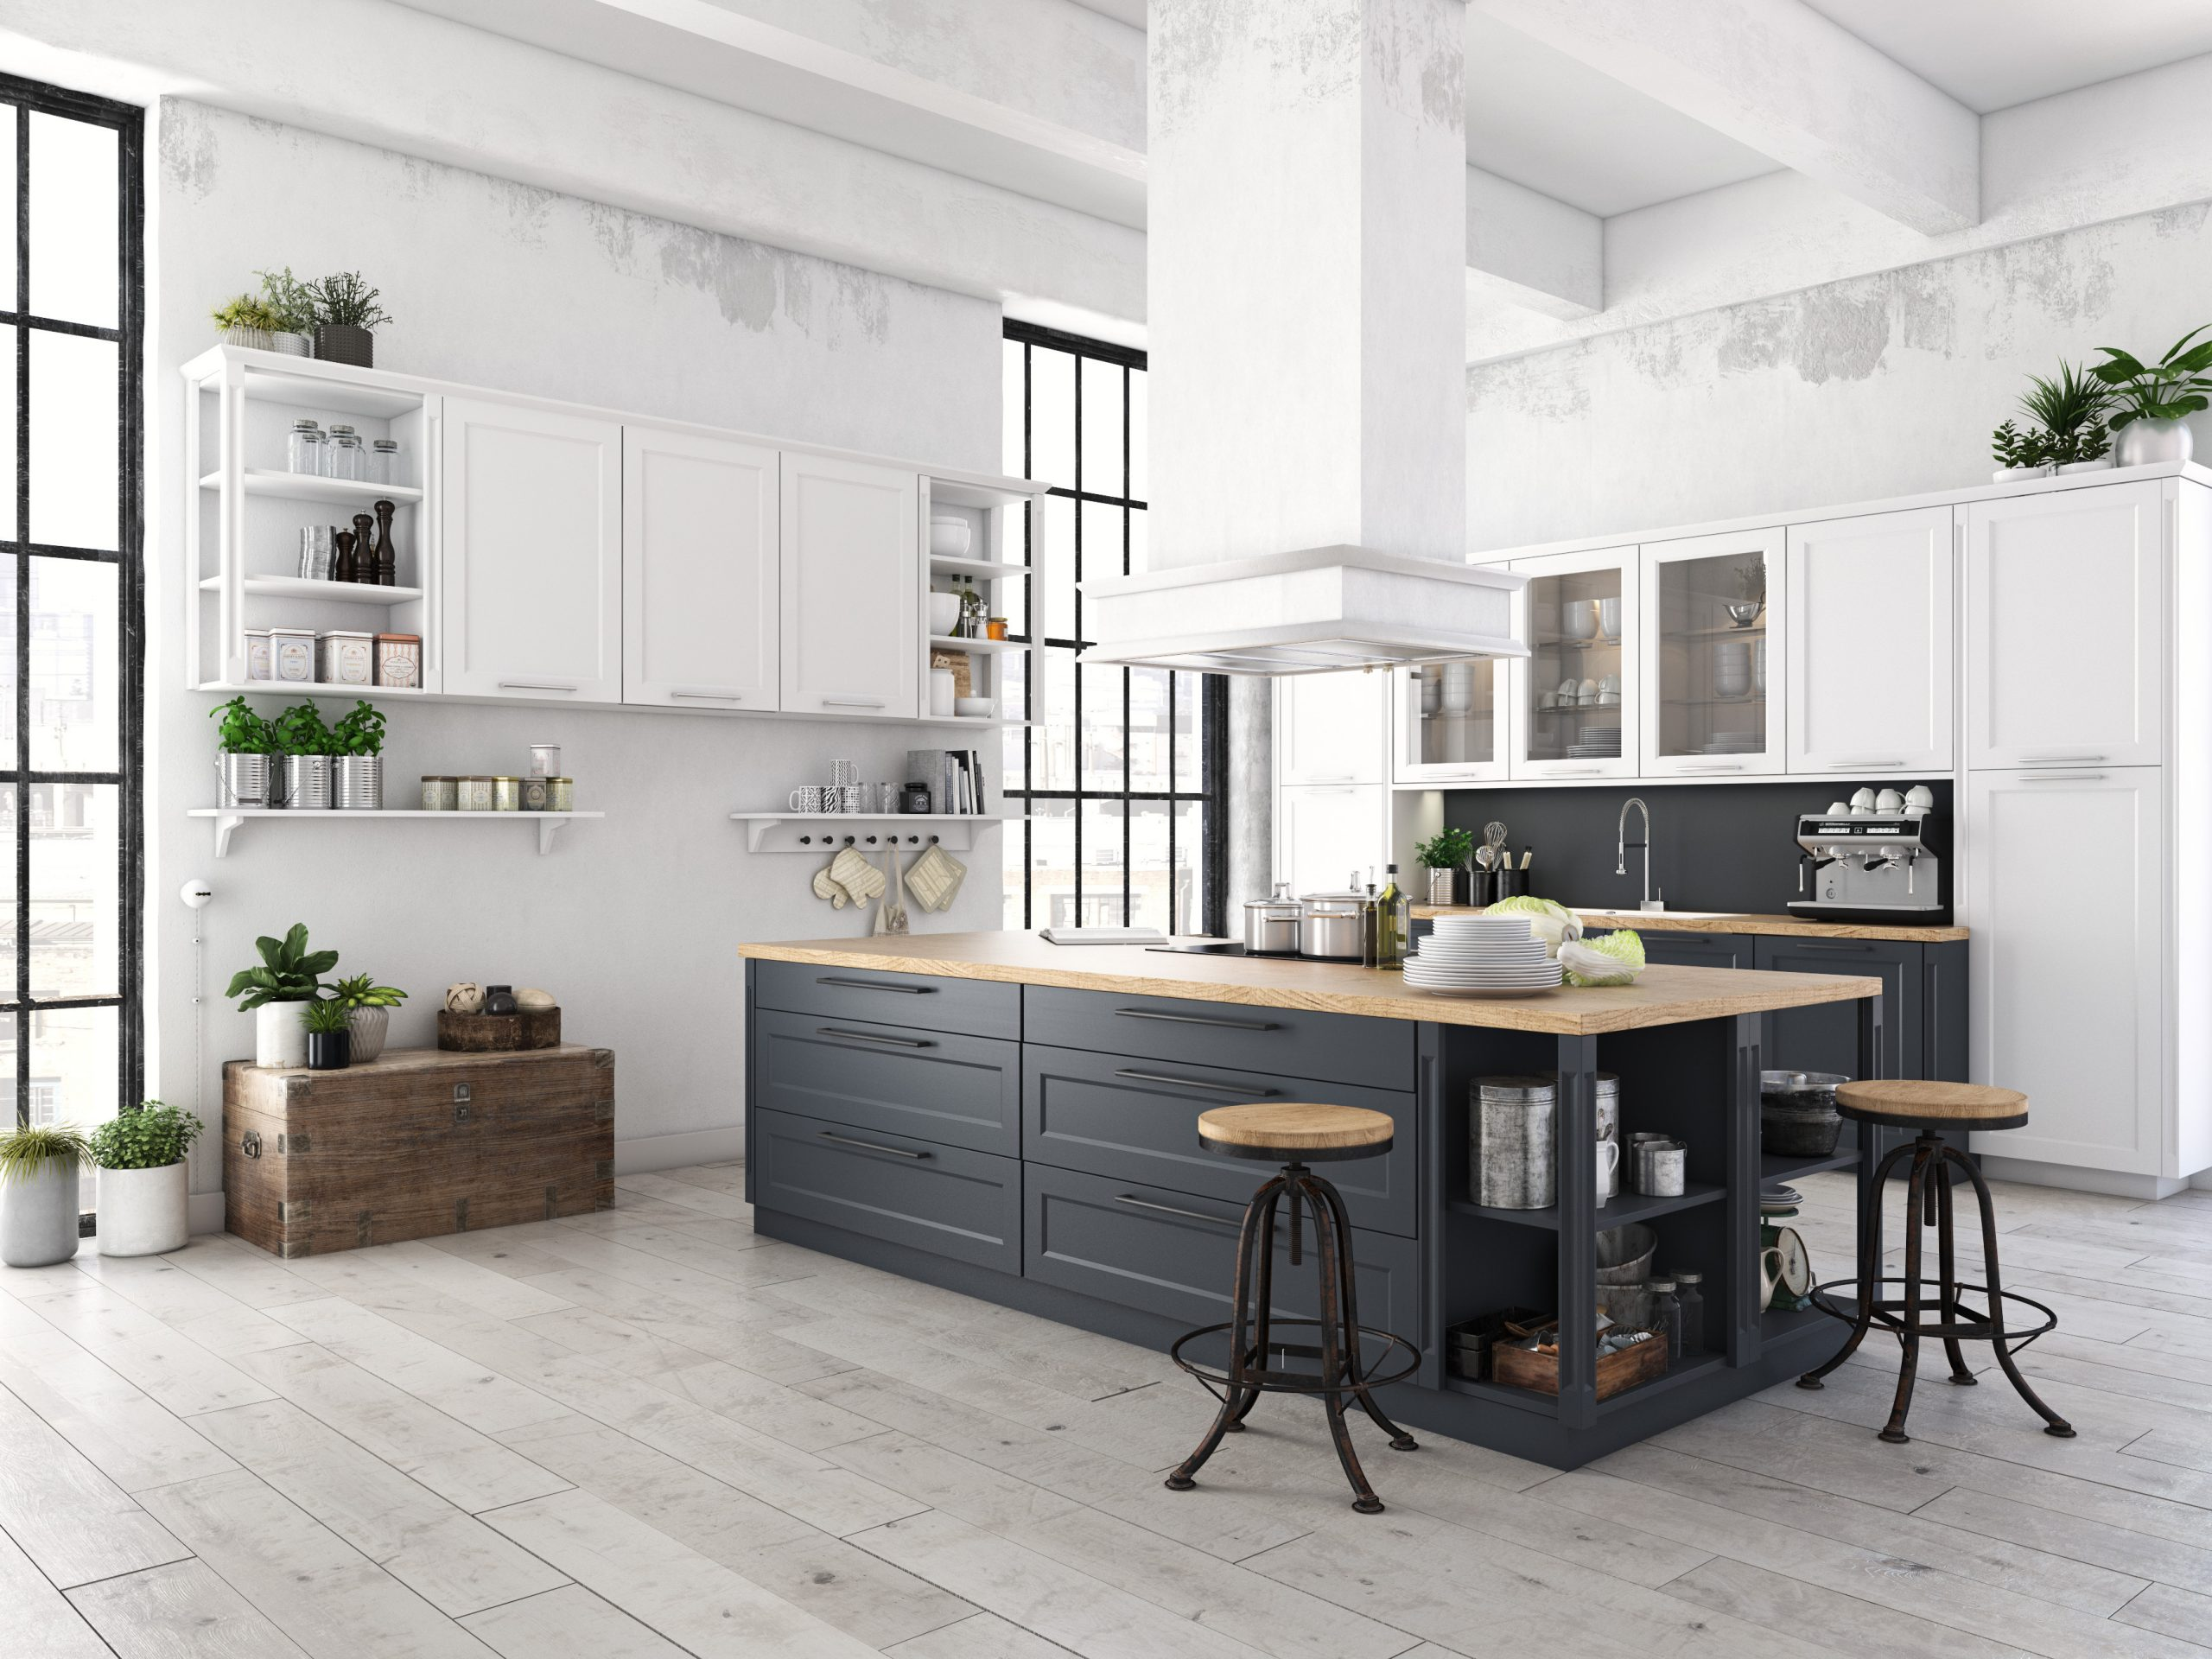 Best methods to remodel the kitchen in different ways.